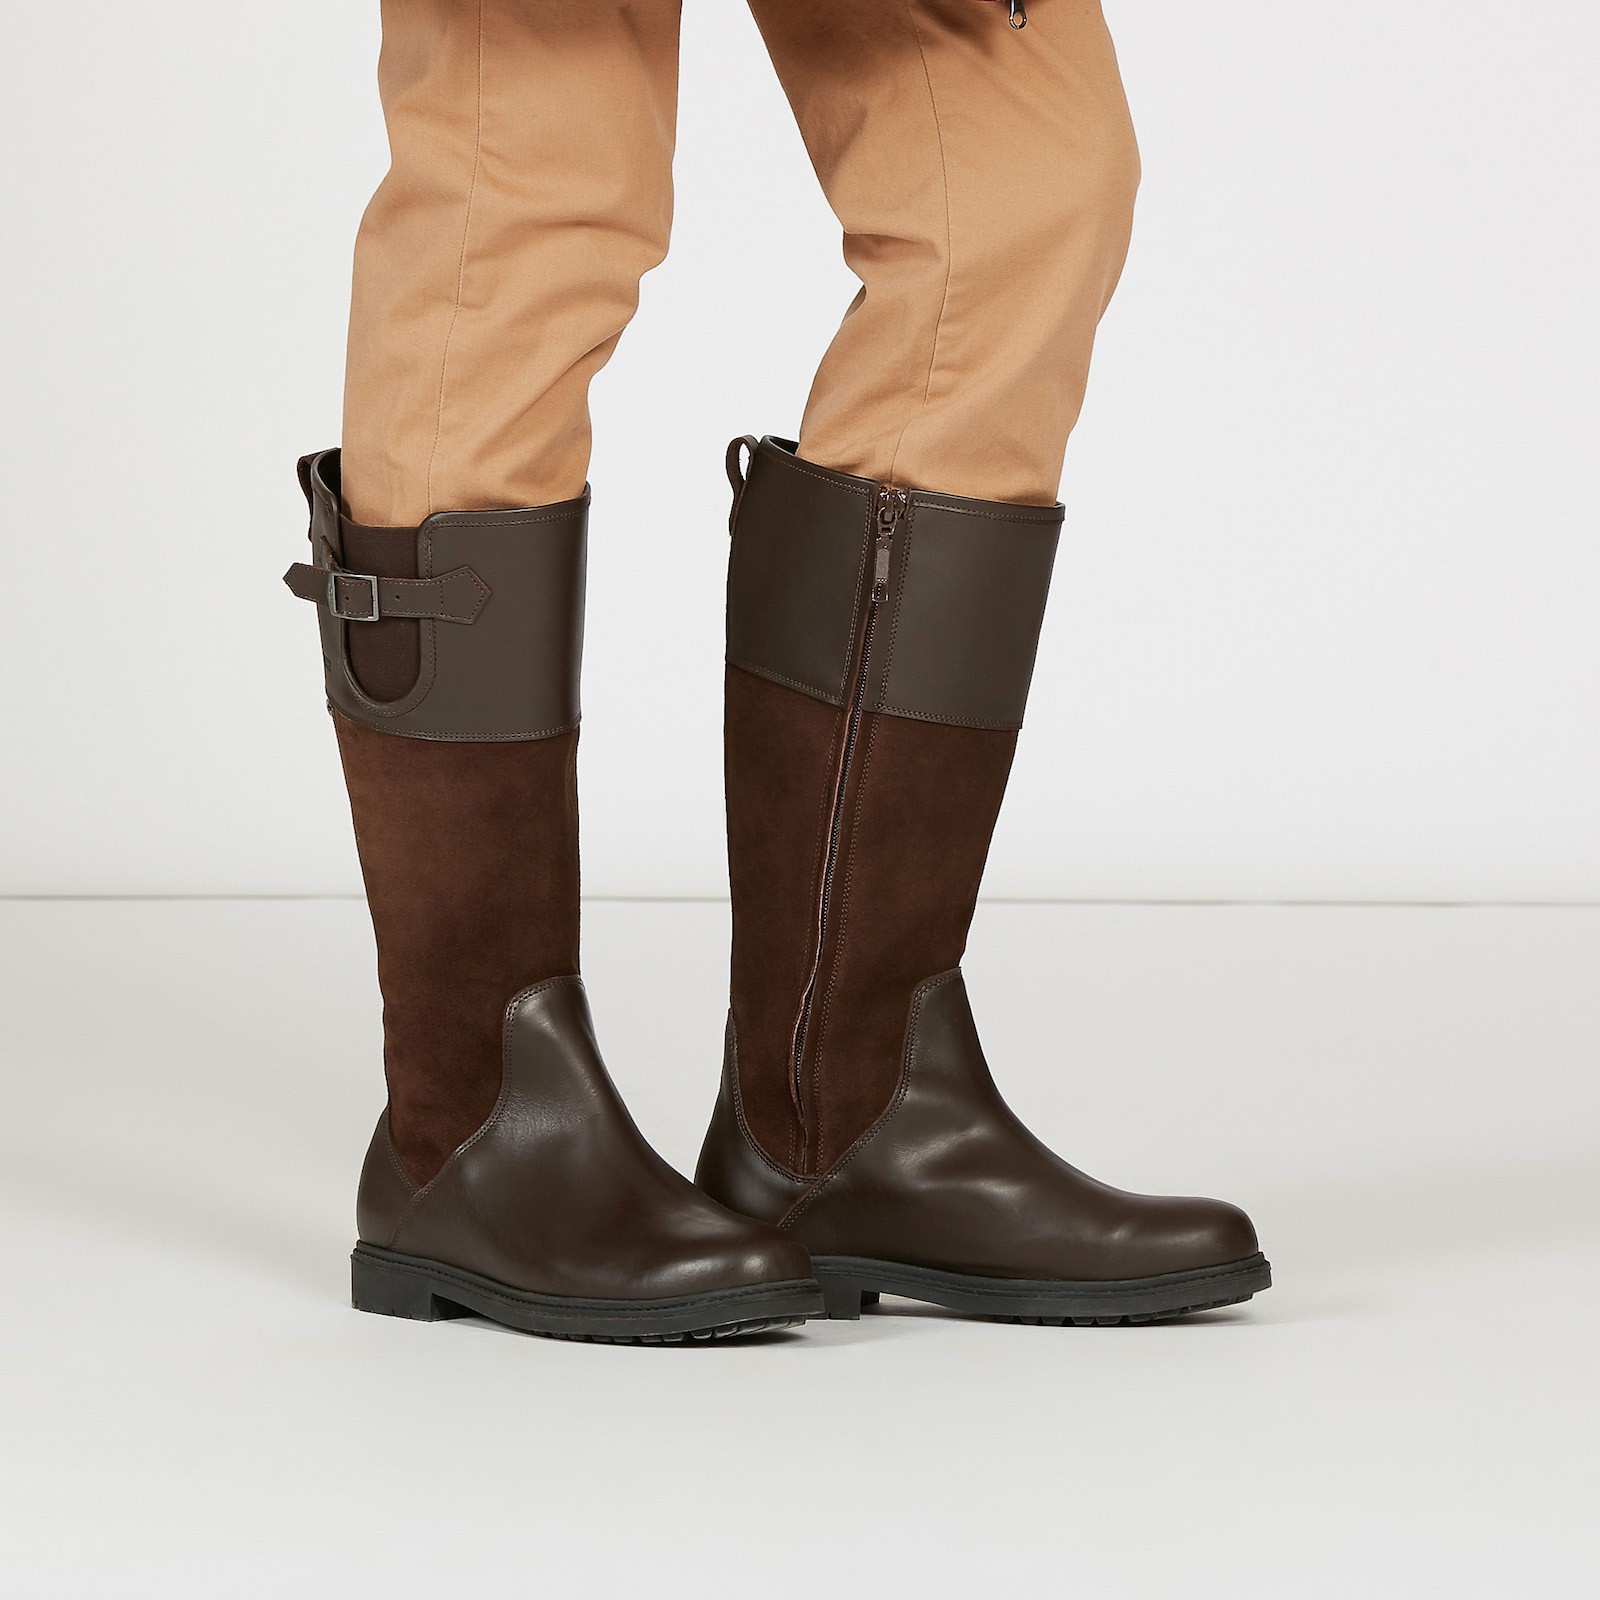 botte chasse aigle cuir